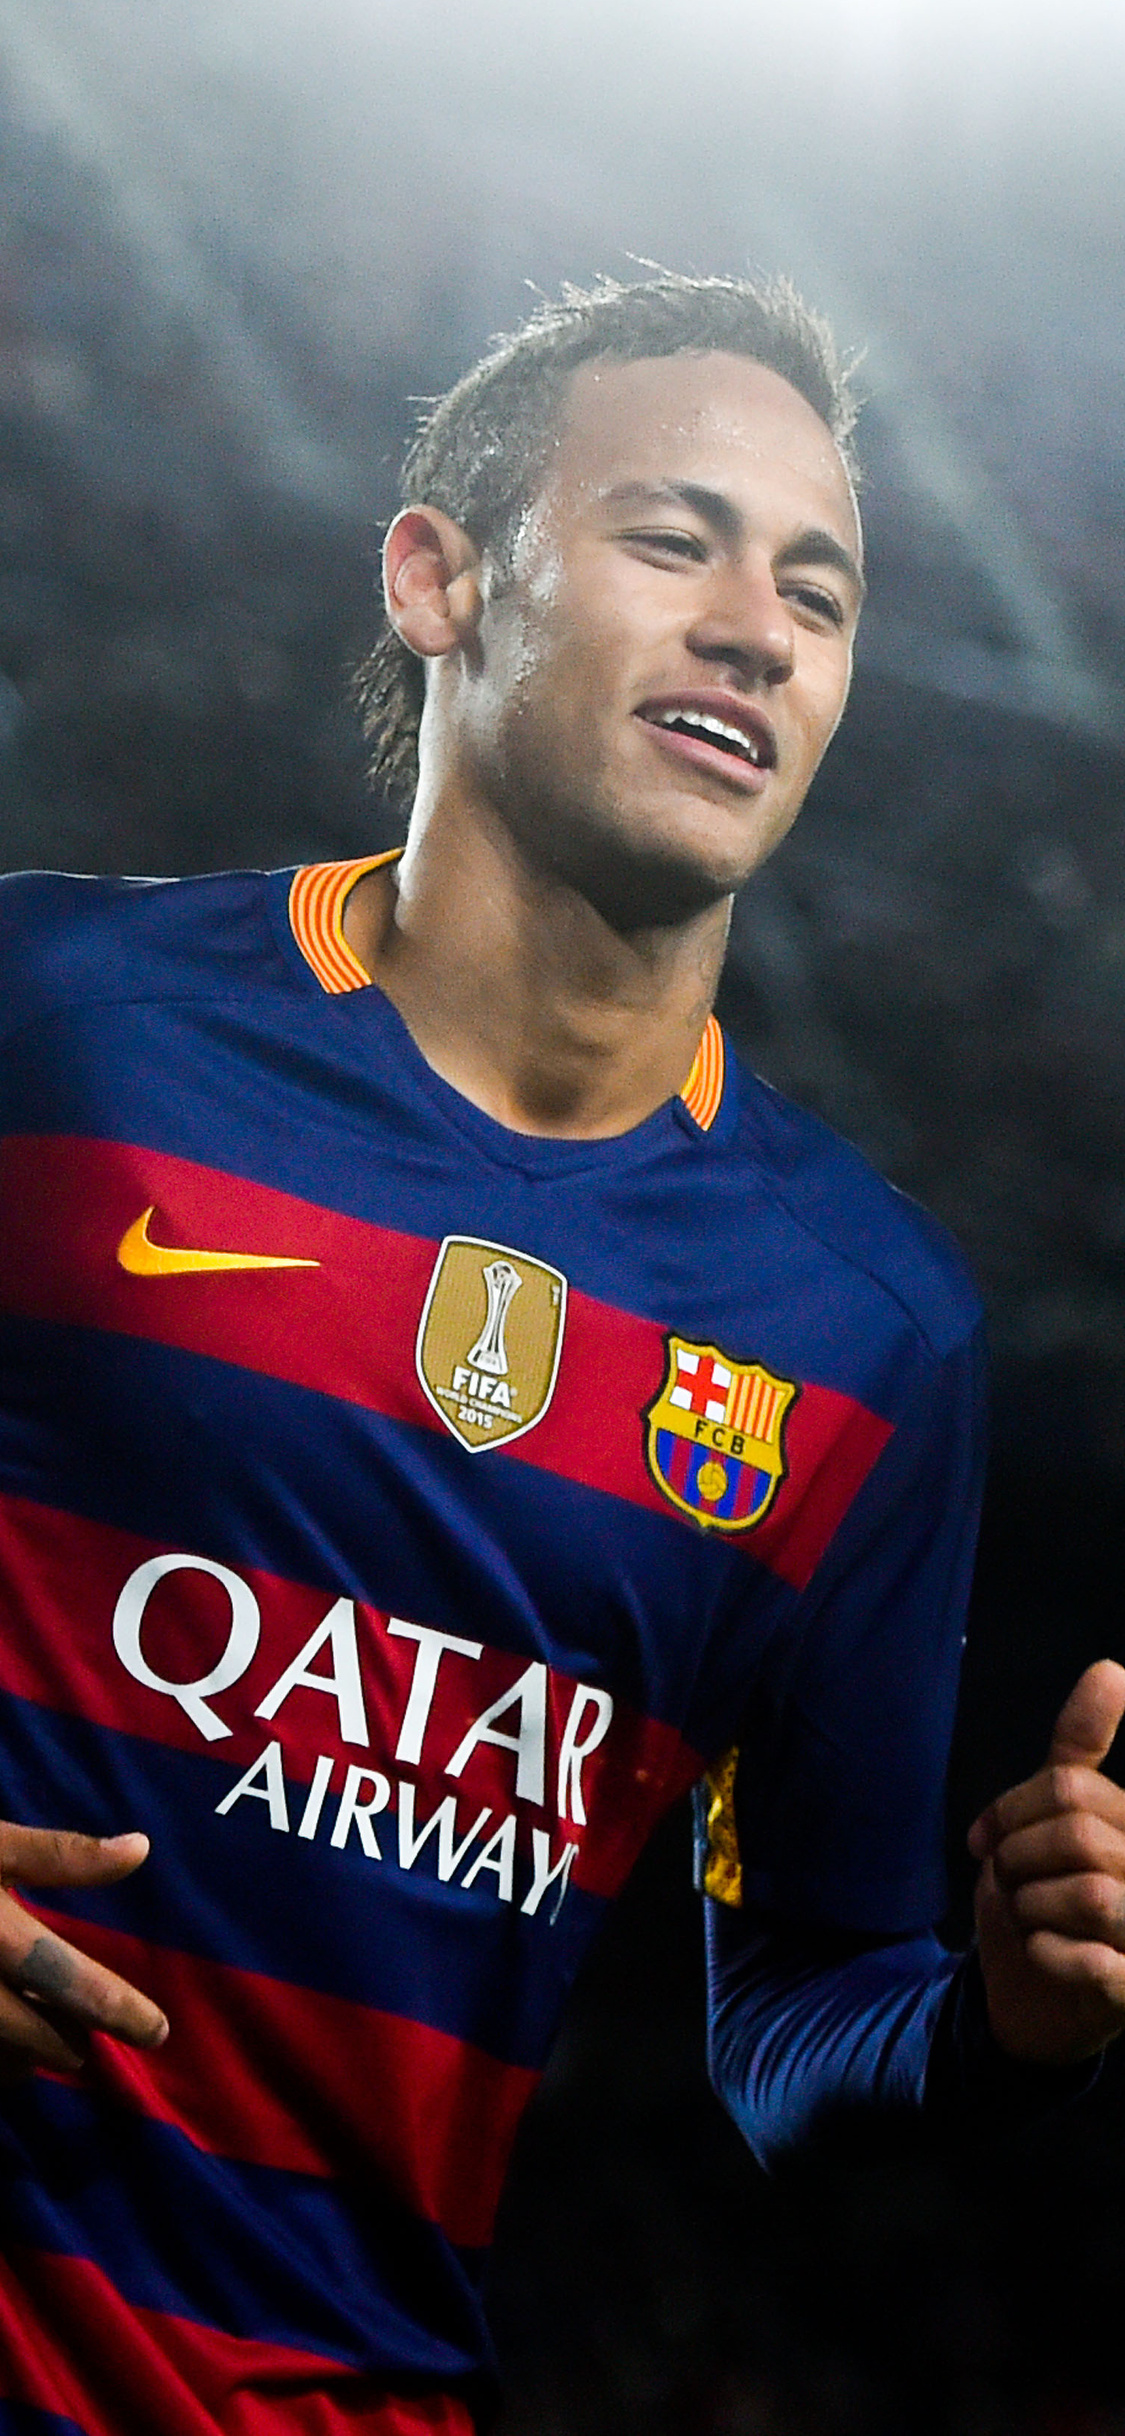 1125x2436 Neymar Iphone Xs Iphone 10 Iphone X Hd 4k Wallpapers Images Backgrounds Photos And Pictures